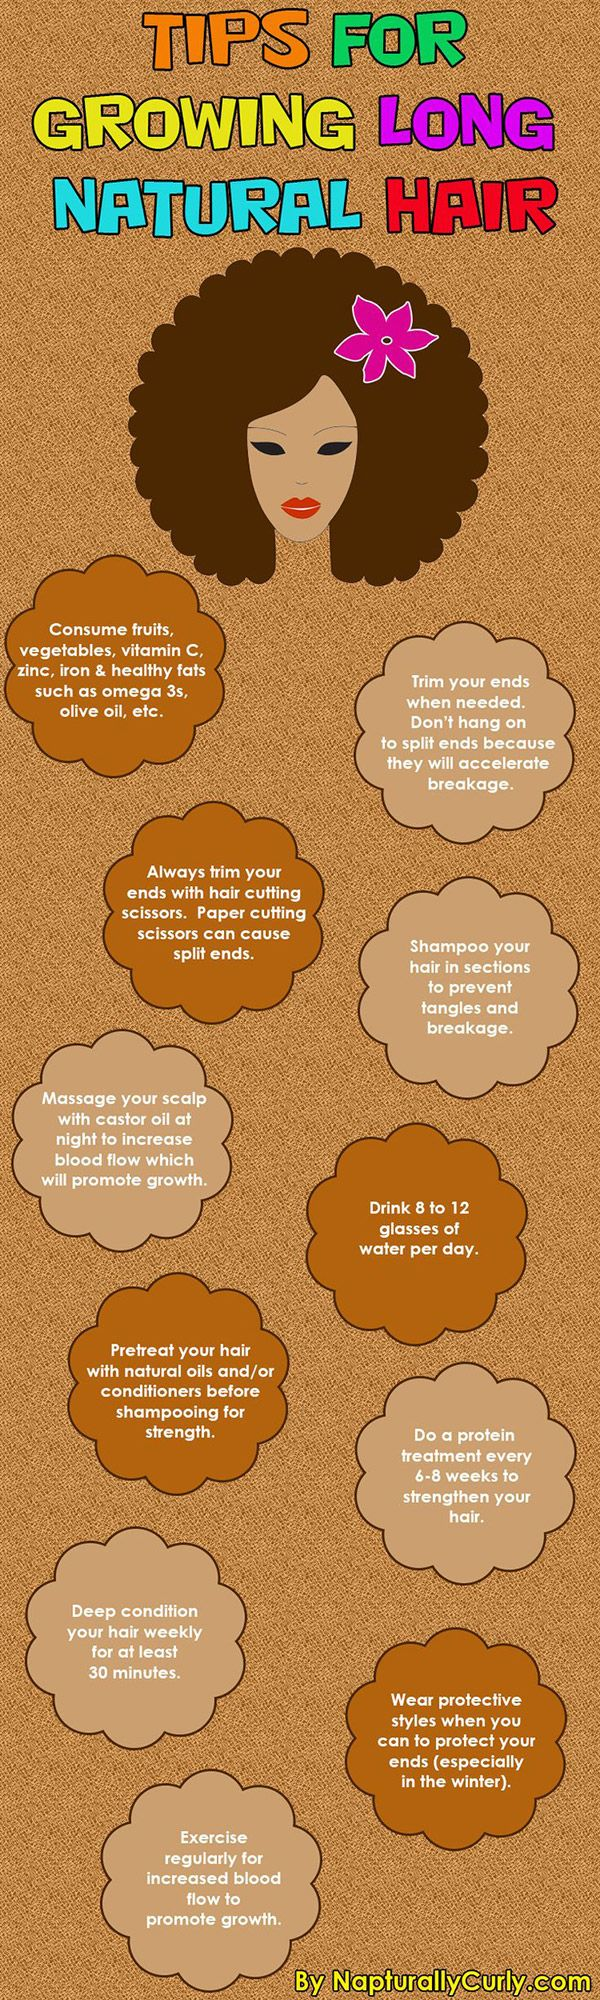 These basic tips are really important to know if you're trying to grow your natural hair.  - If you like this pin, repin it and follow our boards :-)  #FastSimpleFitness - www.facebook.com/FastSimpleFitness